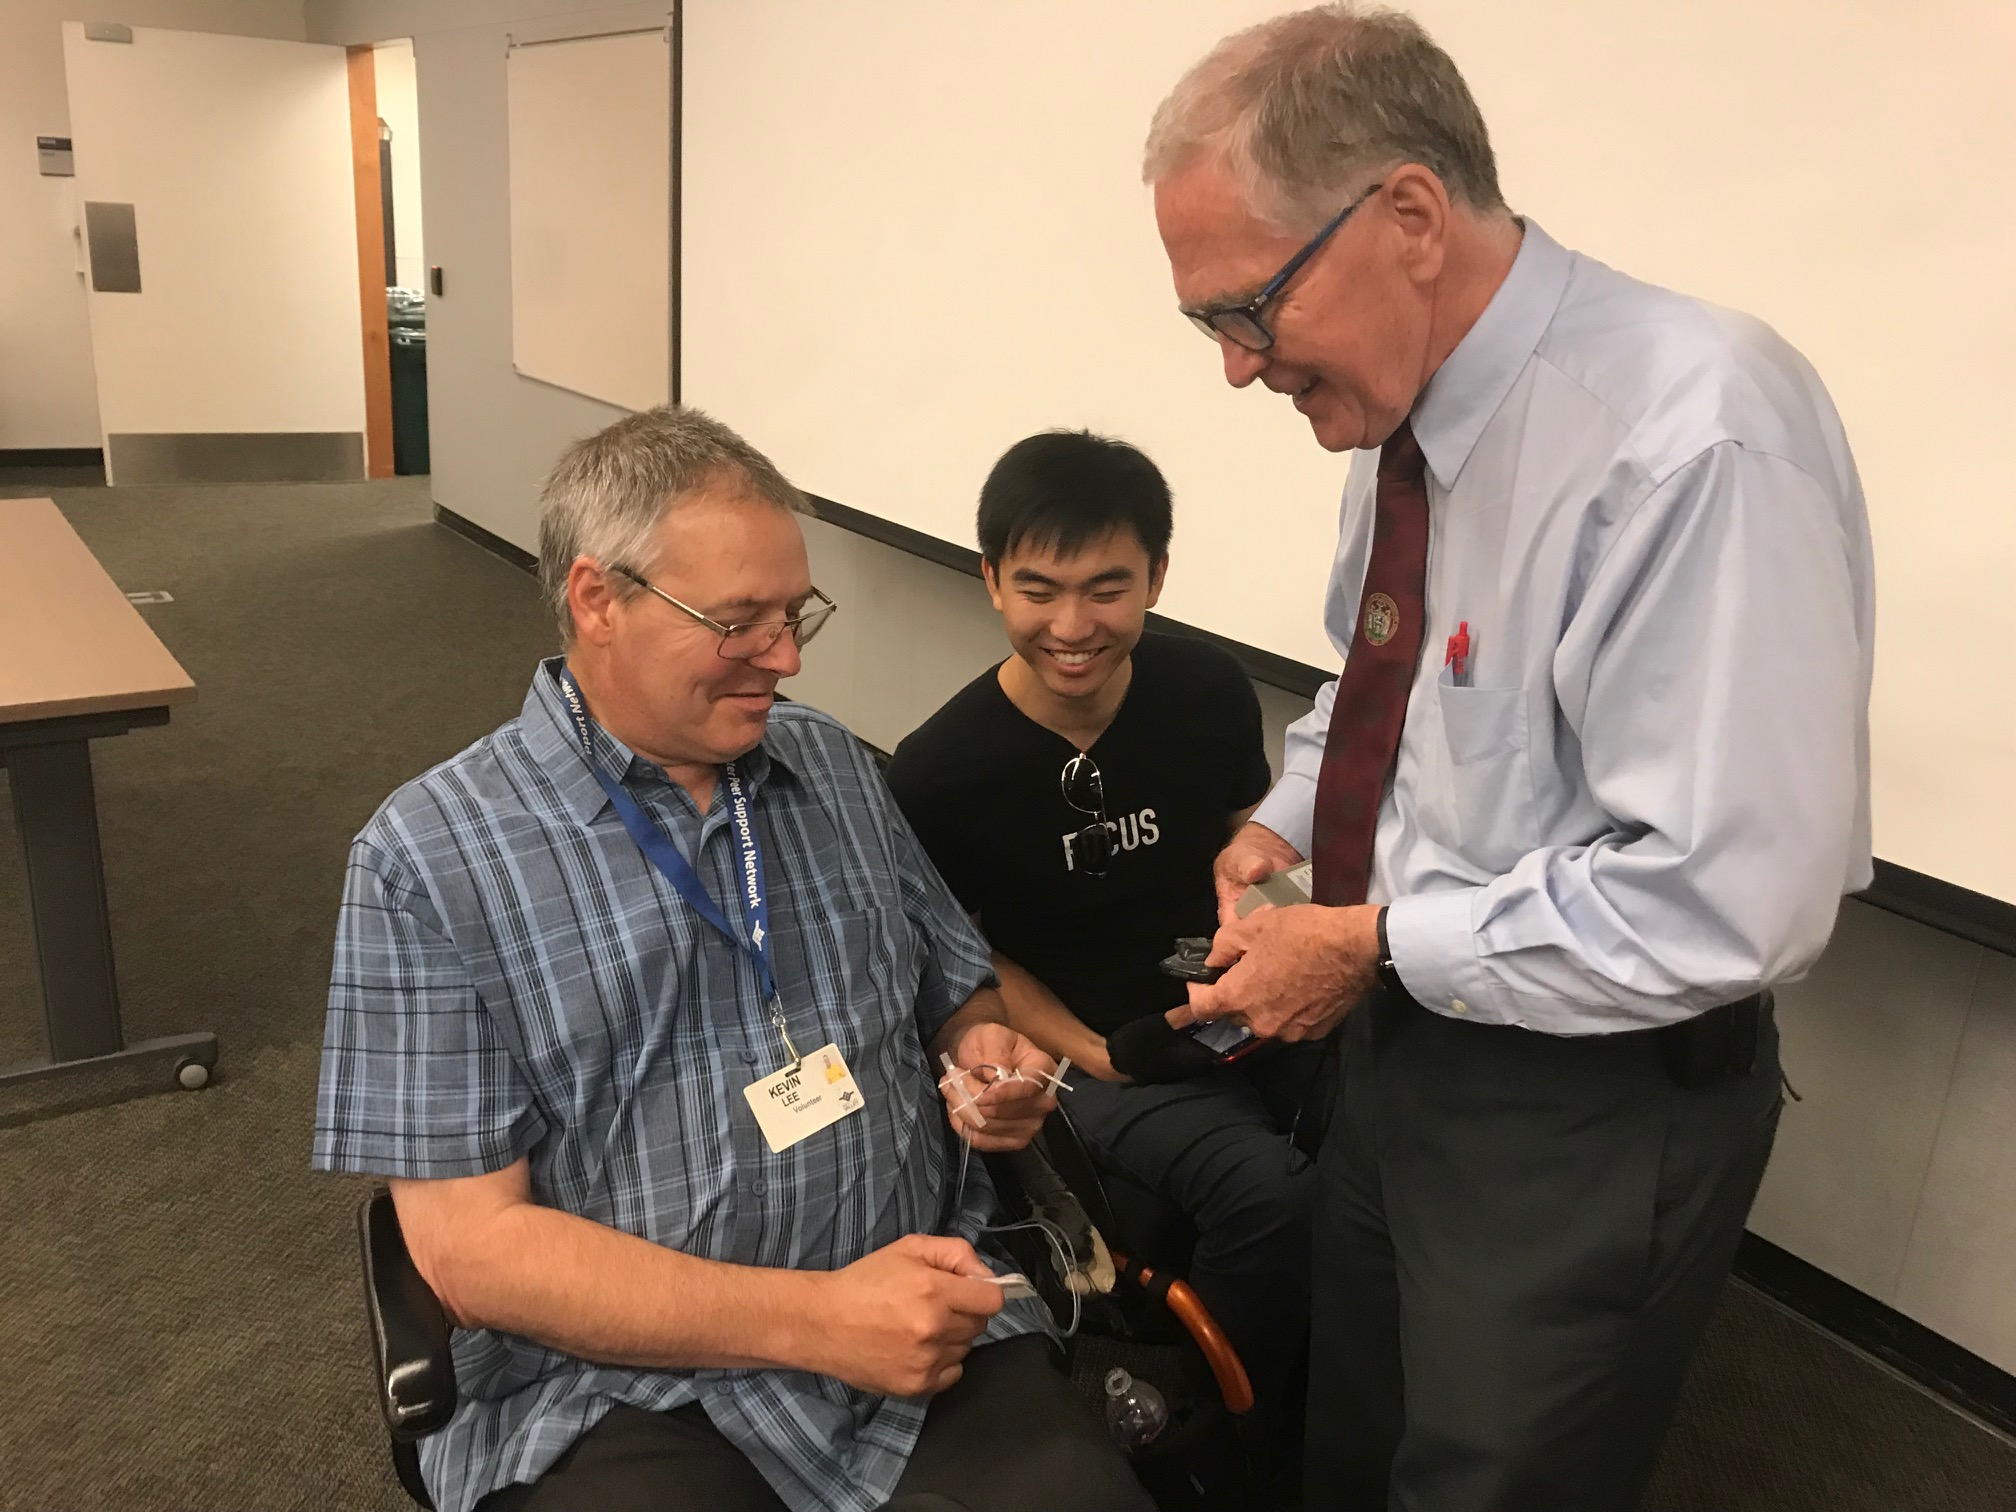 Dr. Creasey showing Kevin Lee (in front) and Ran Tao the electrodes used in the procedure.